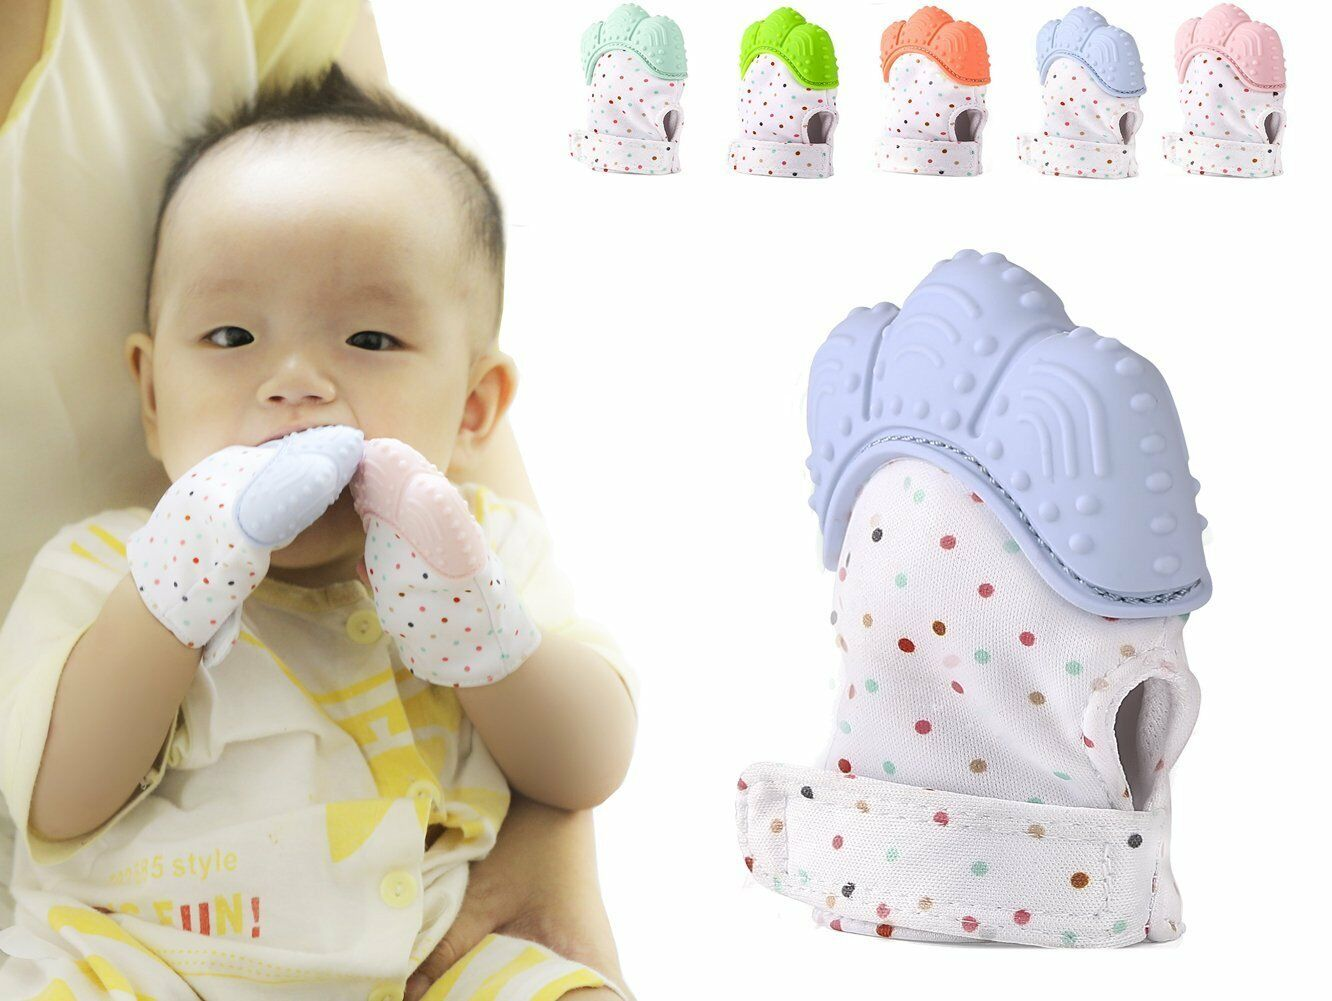 Baby Silicone Teether Mittens Teething Mitten Gloves Wrapper Sound Toys Gifts US